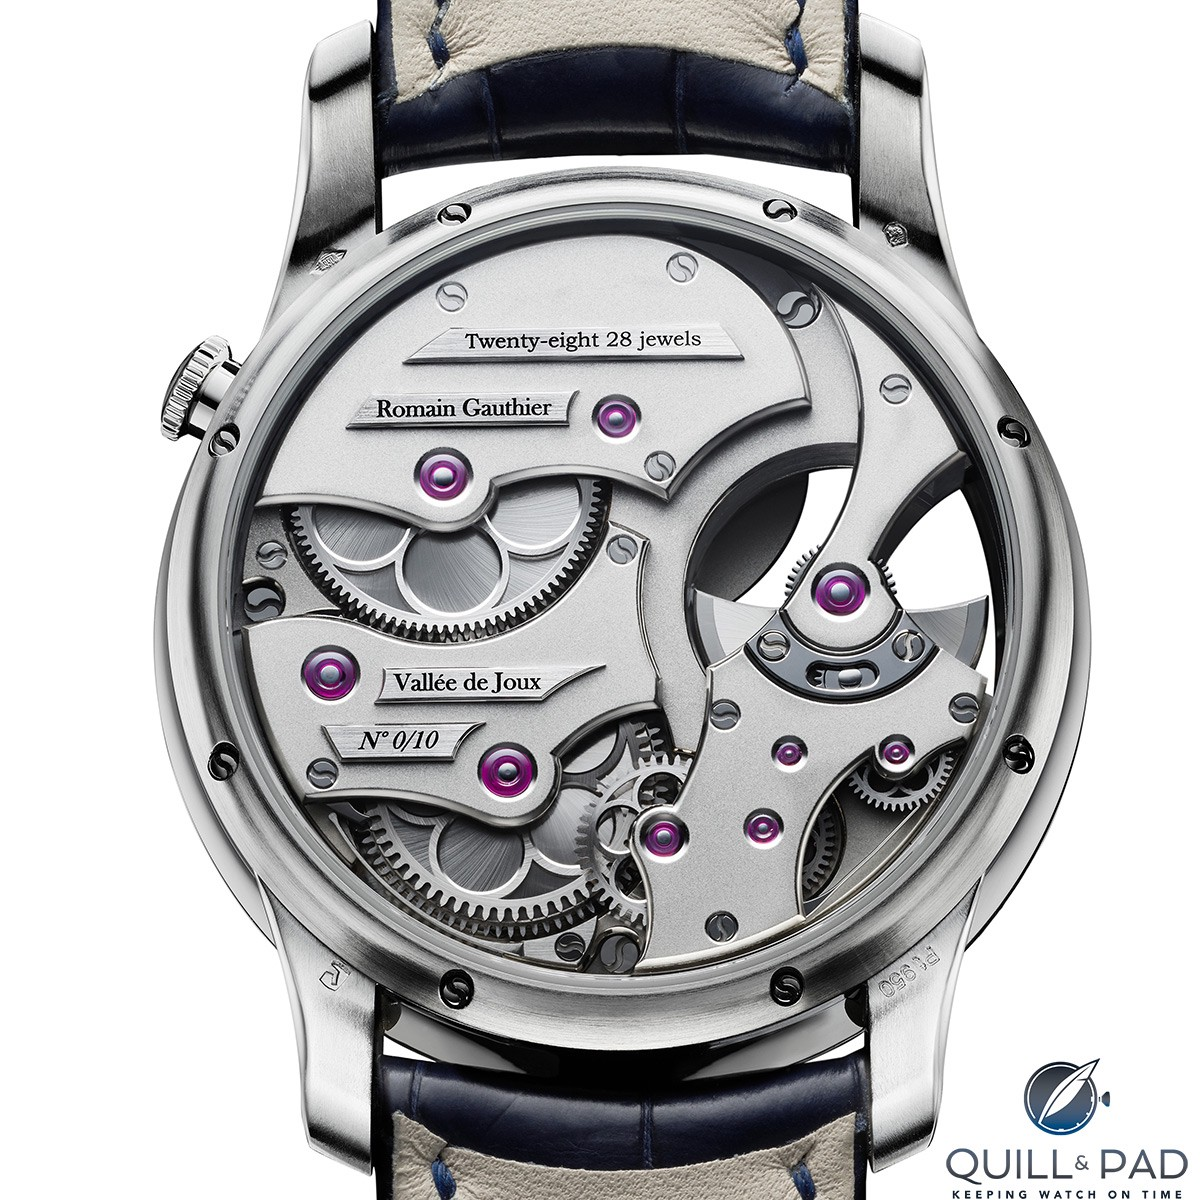 View through the display back of a limited edition platinum Romain Gauthier Insight micro-rotor